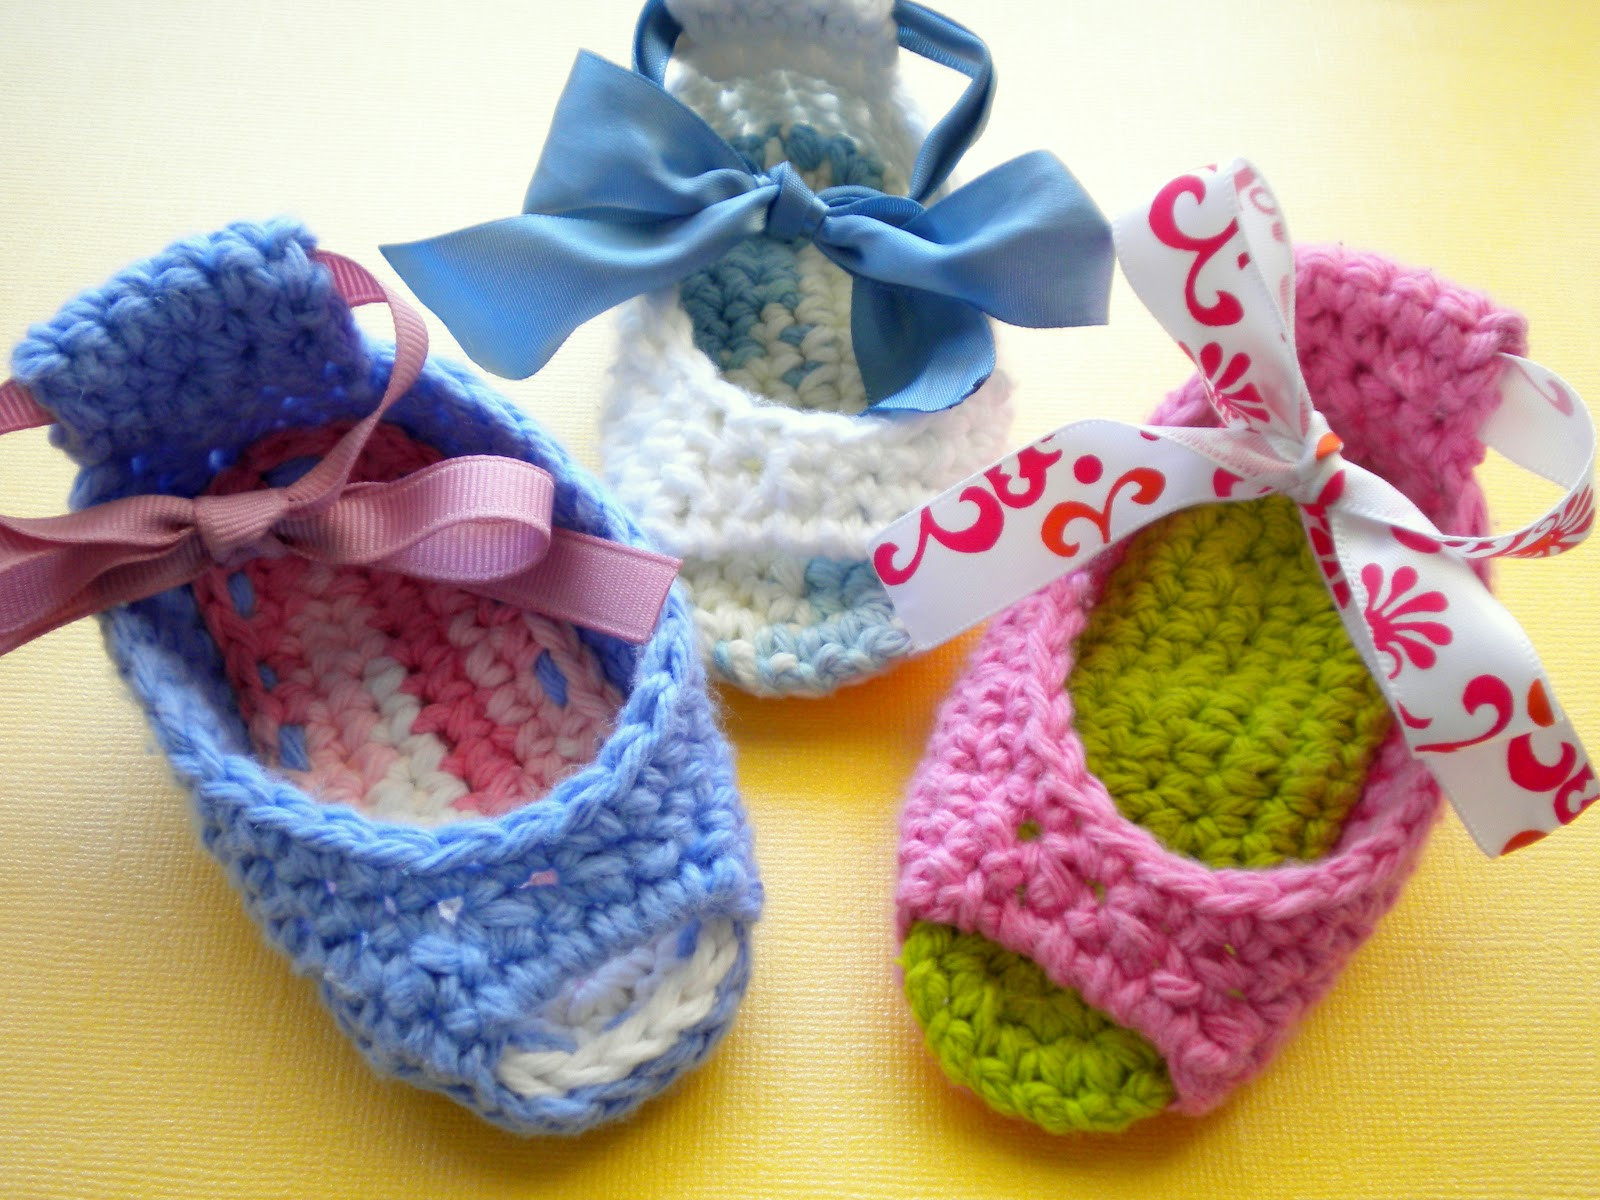 New Annavirginia Fashion Piggy Peeps Baby Shoes Pattern Crochet toddler Slippers Of Delightful 50 Images Crochet toddler Slippers